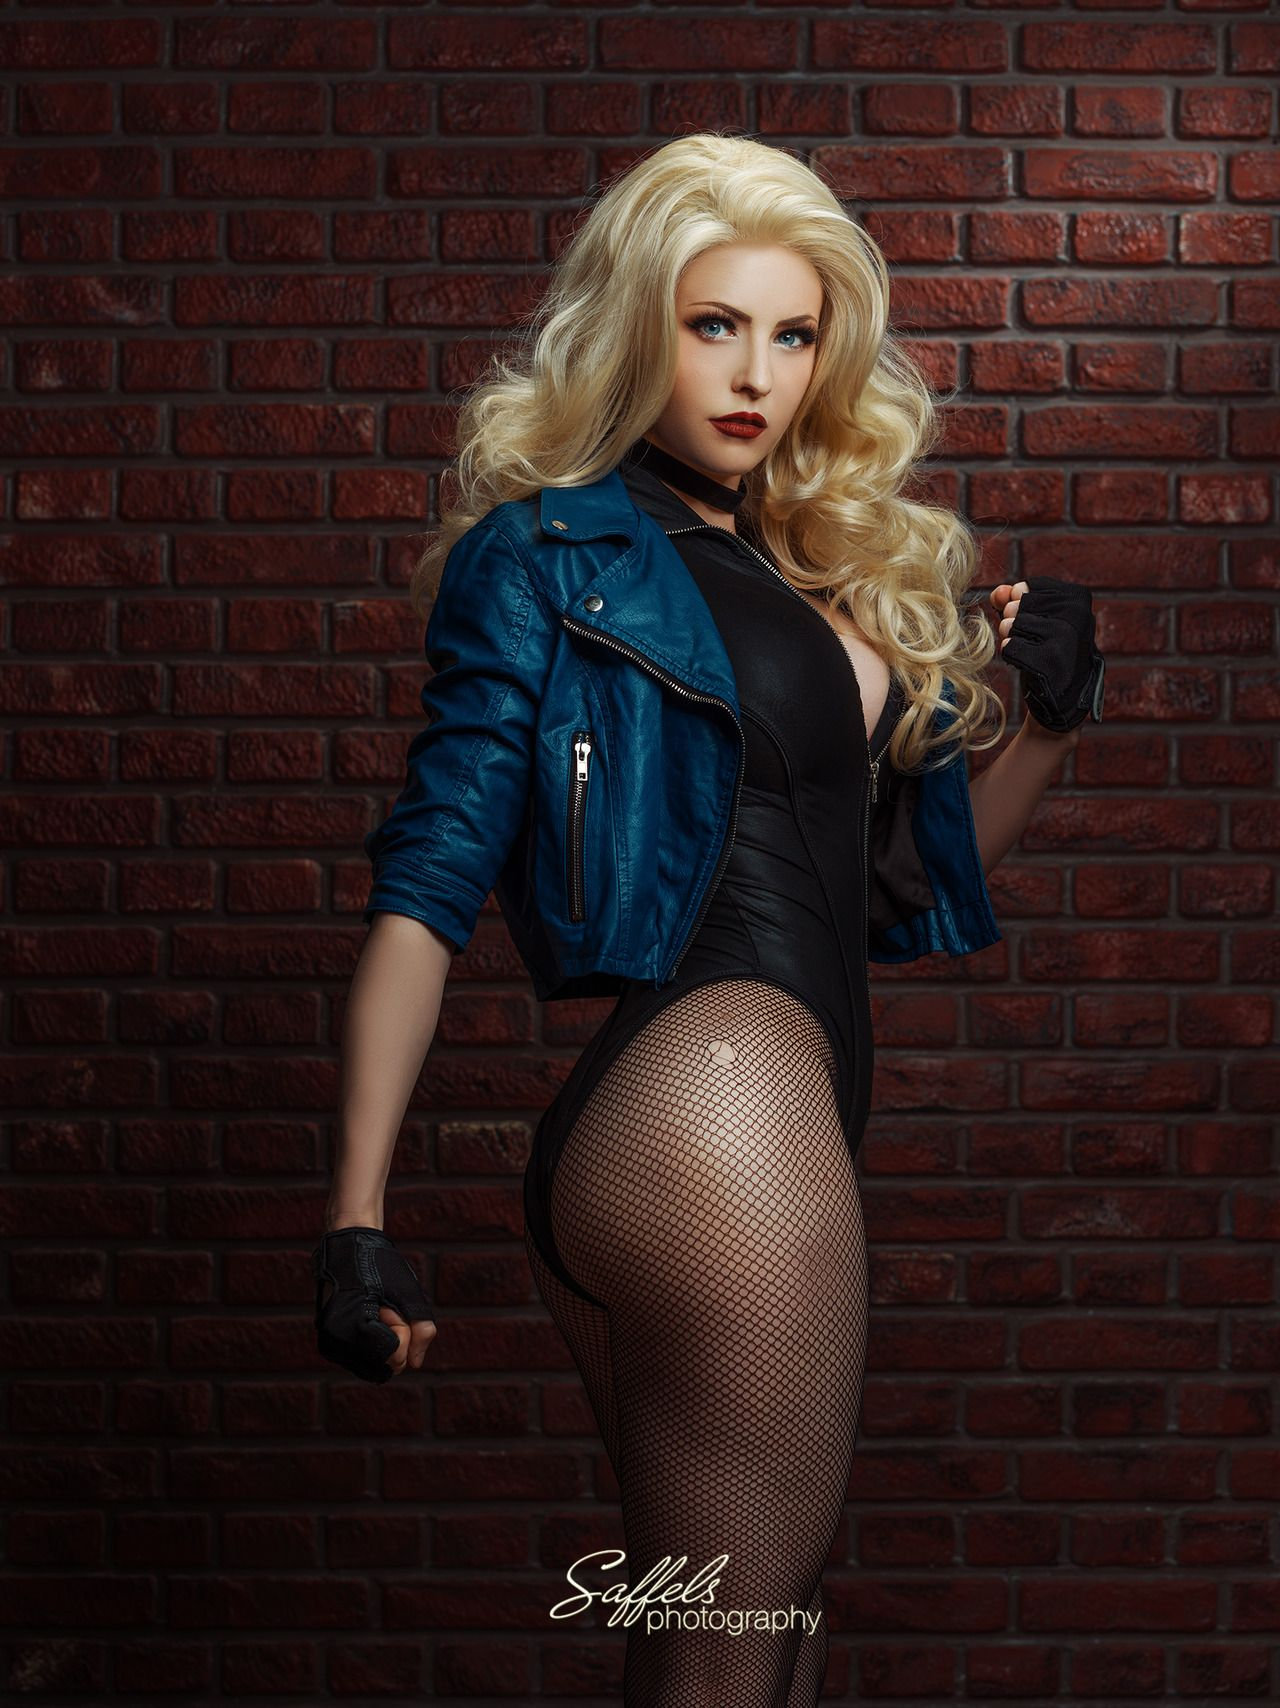 Pin on Cosplay - Black Canary